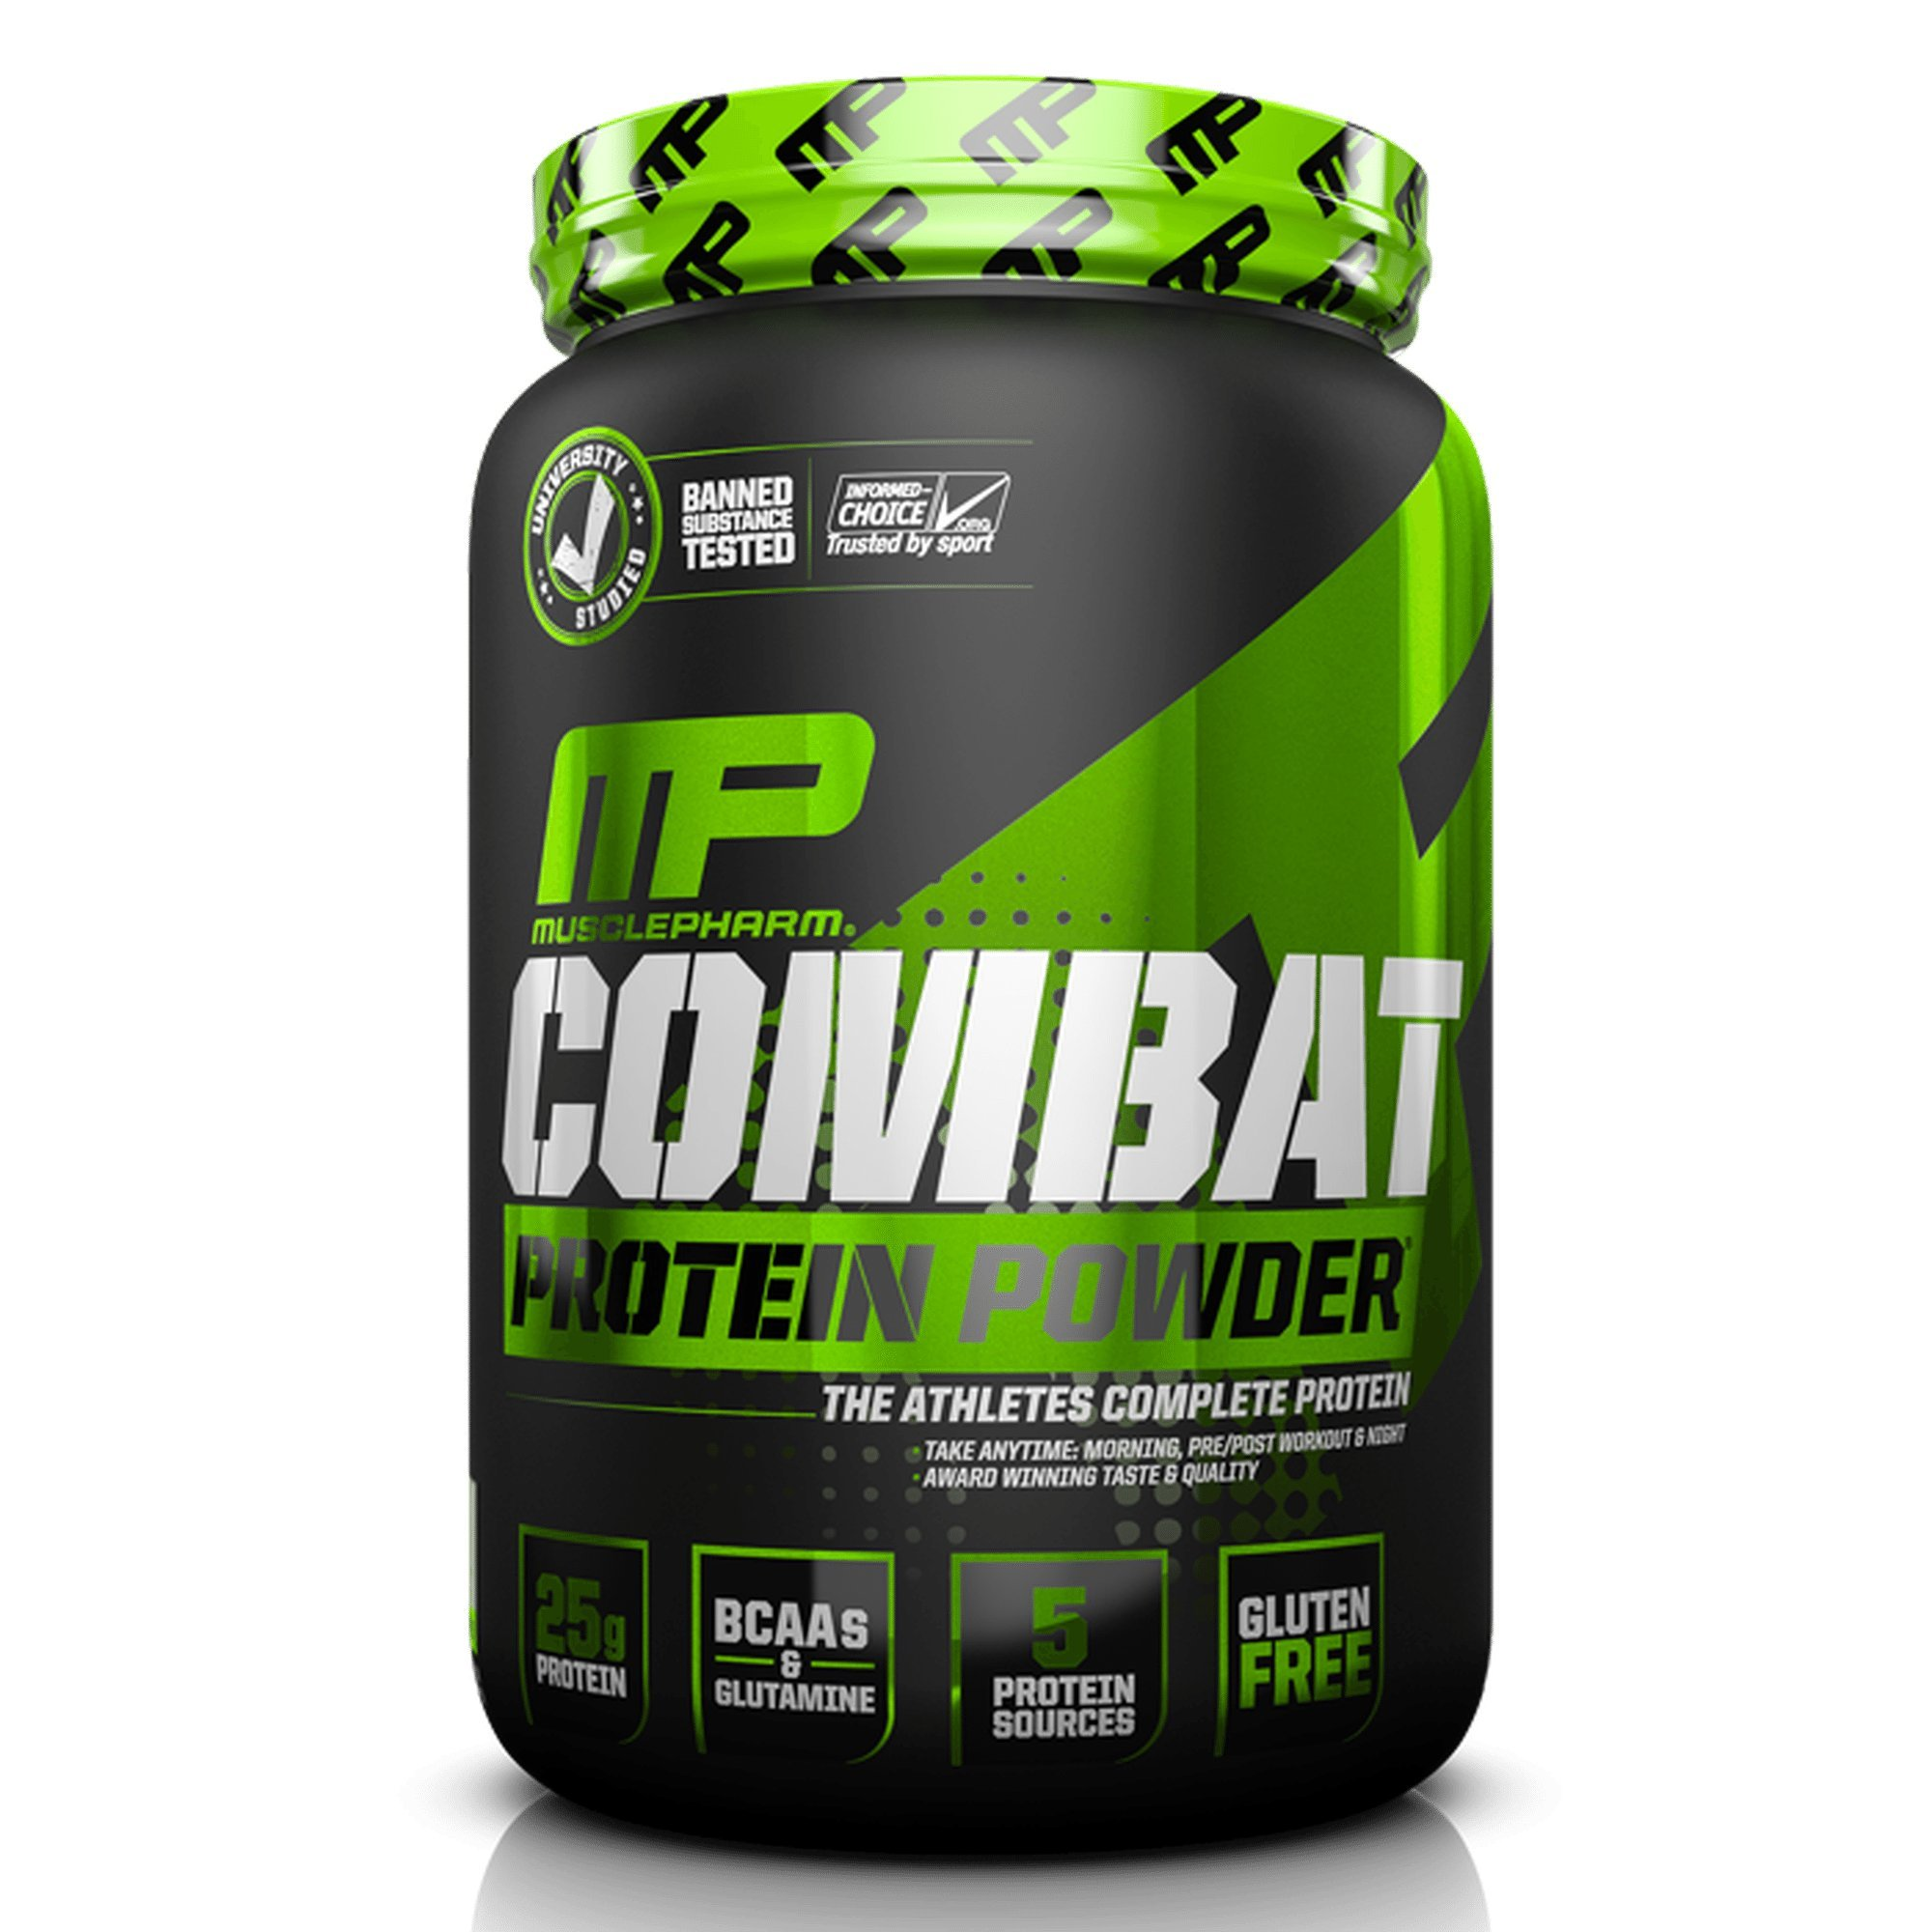 Amazon.com: MusclePharm Combat Protein Powder, 5 Protein Blend, Chocolate Milk, 2 Pounds, 26 Servings: Health & Personal Care